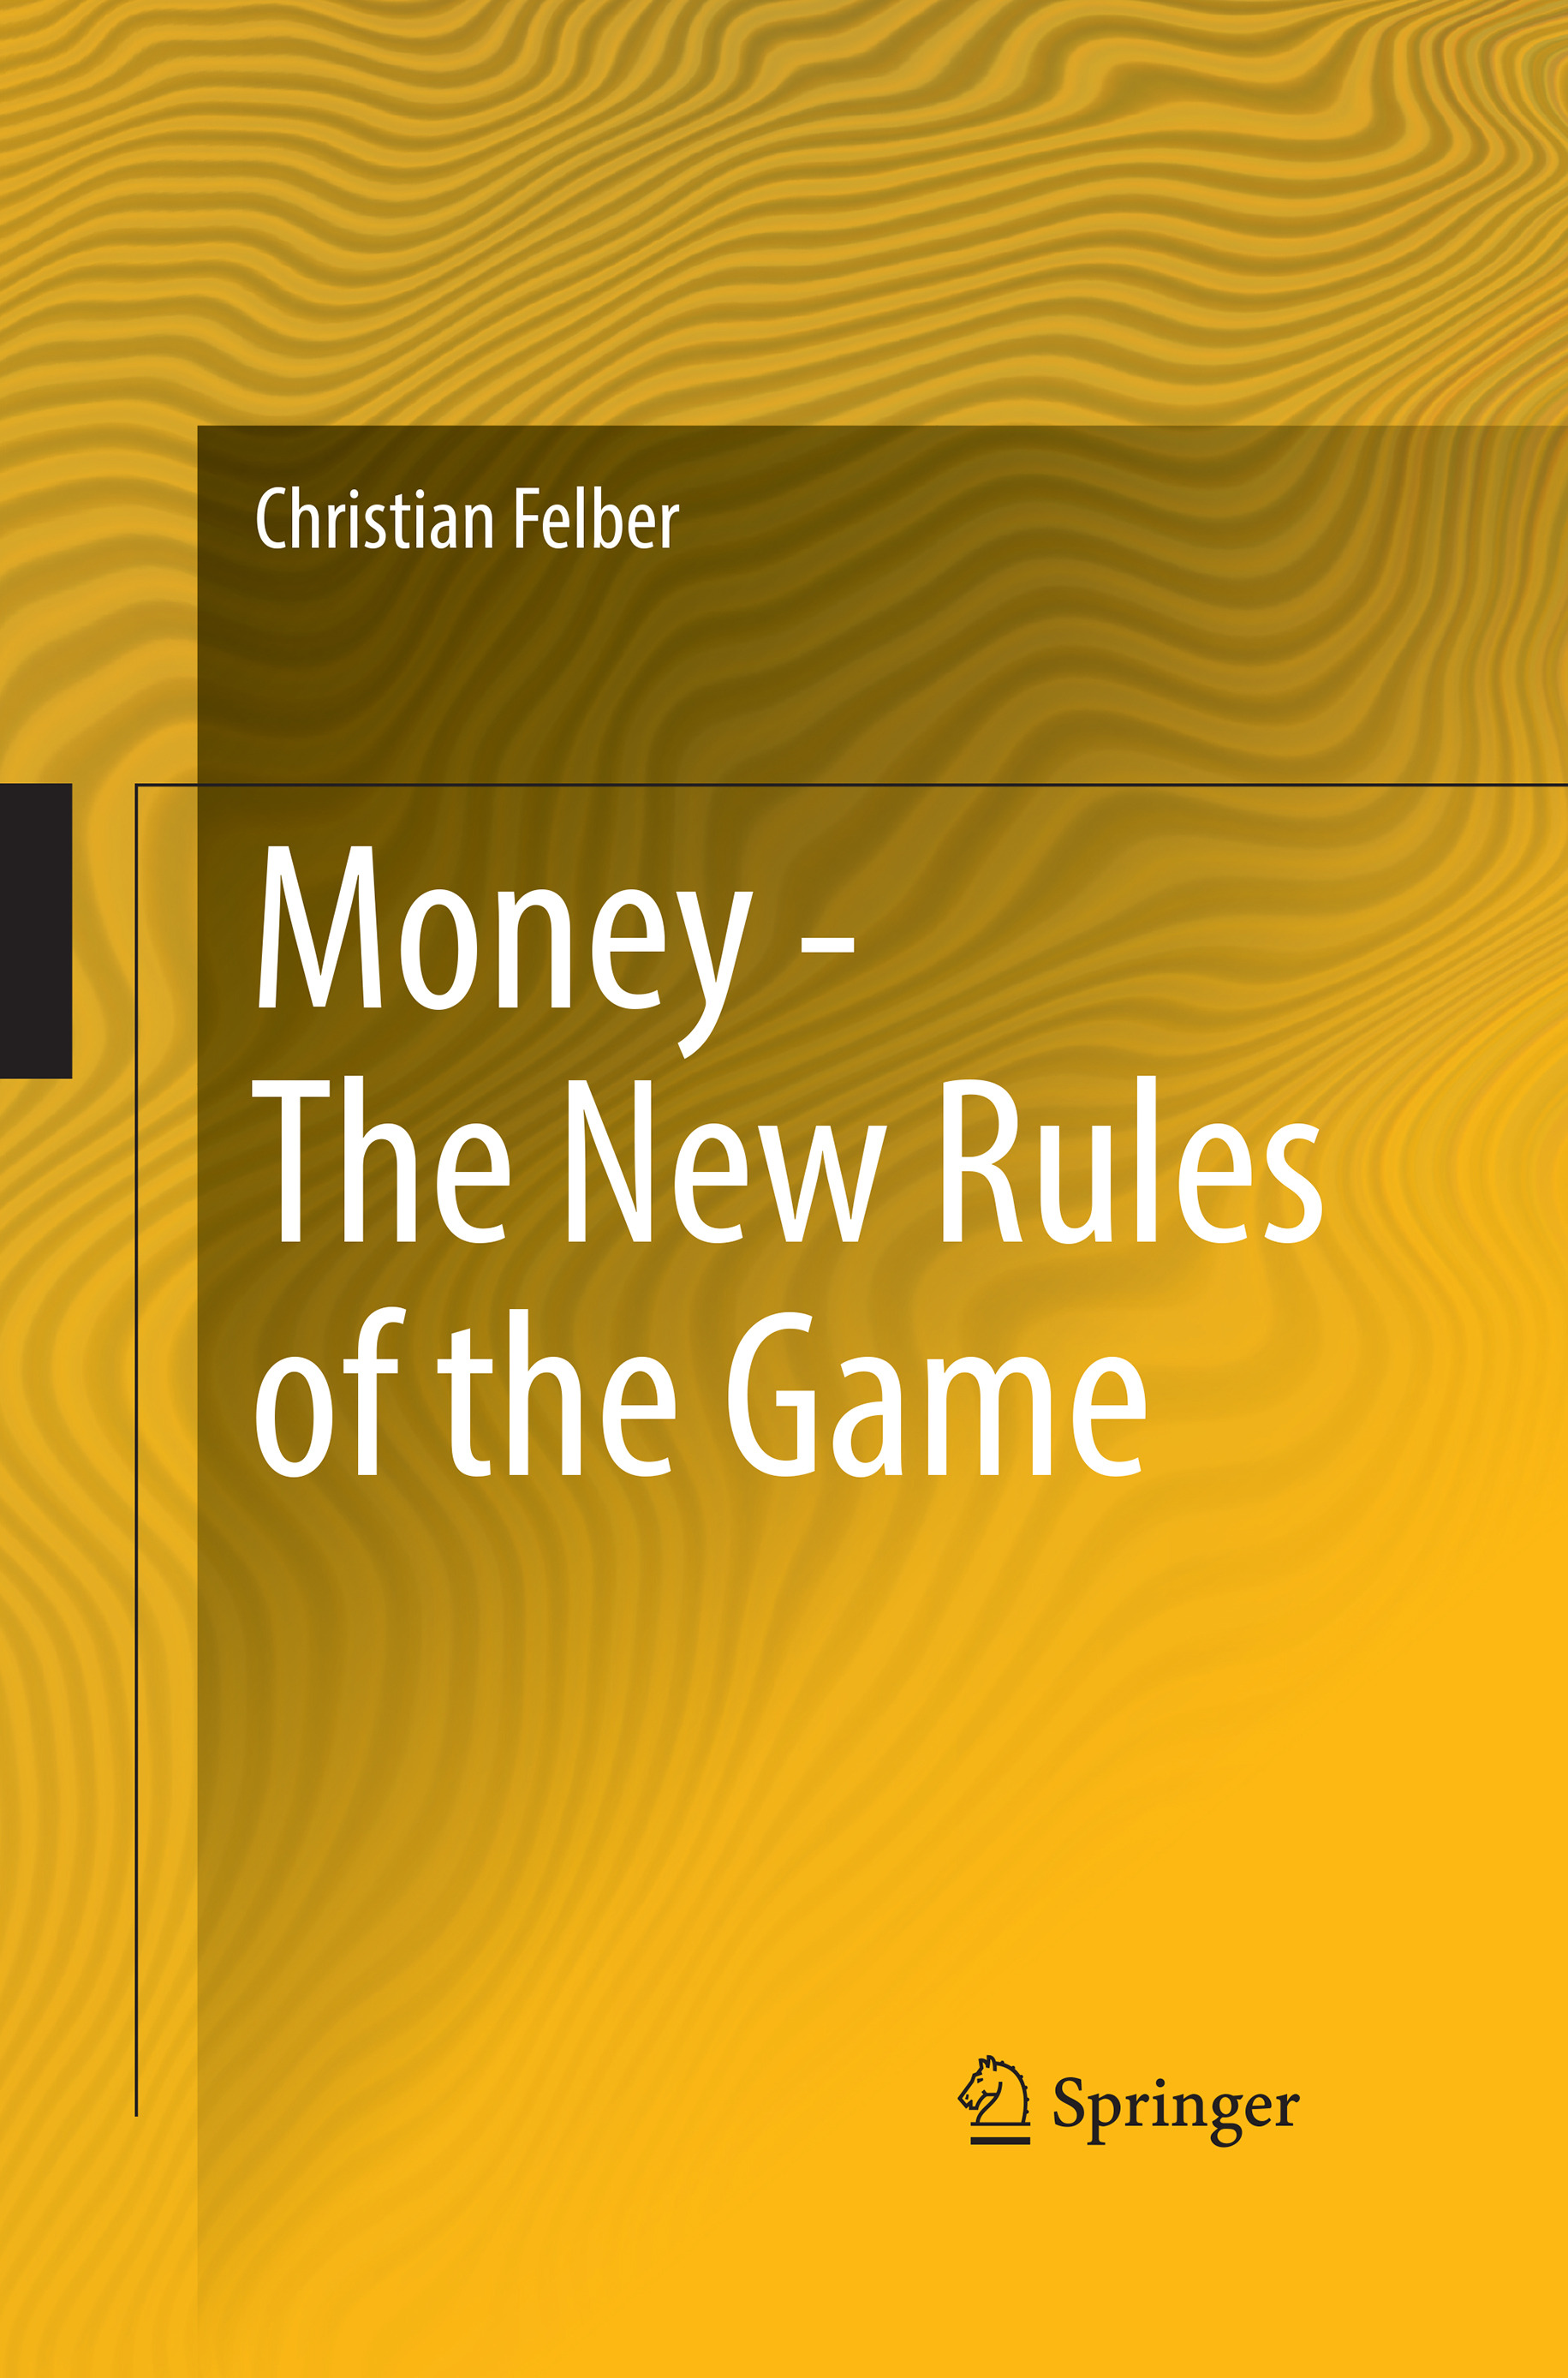 Felber, Christian - Money - The New Rules of the Game, ebook